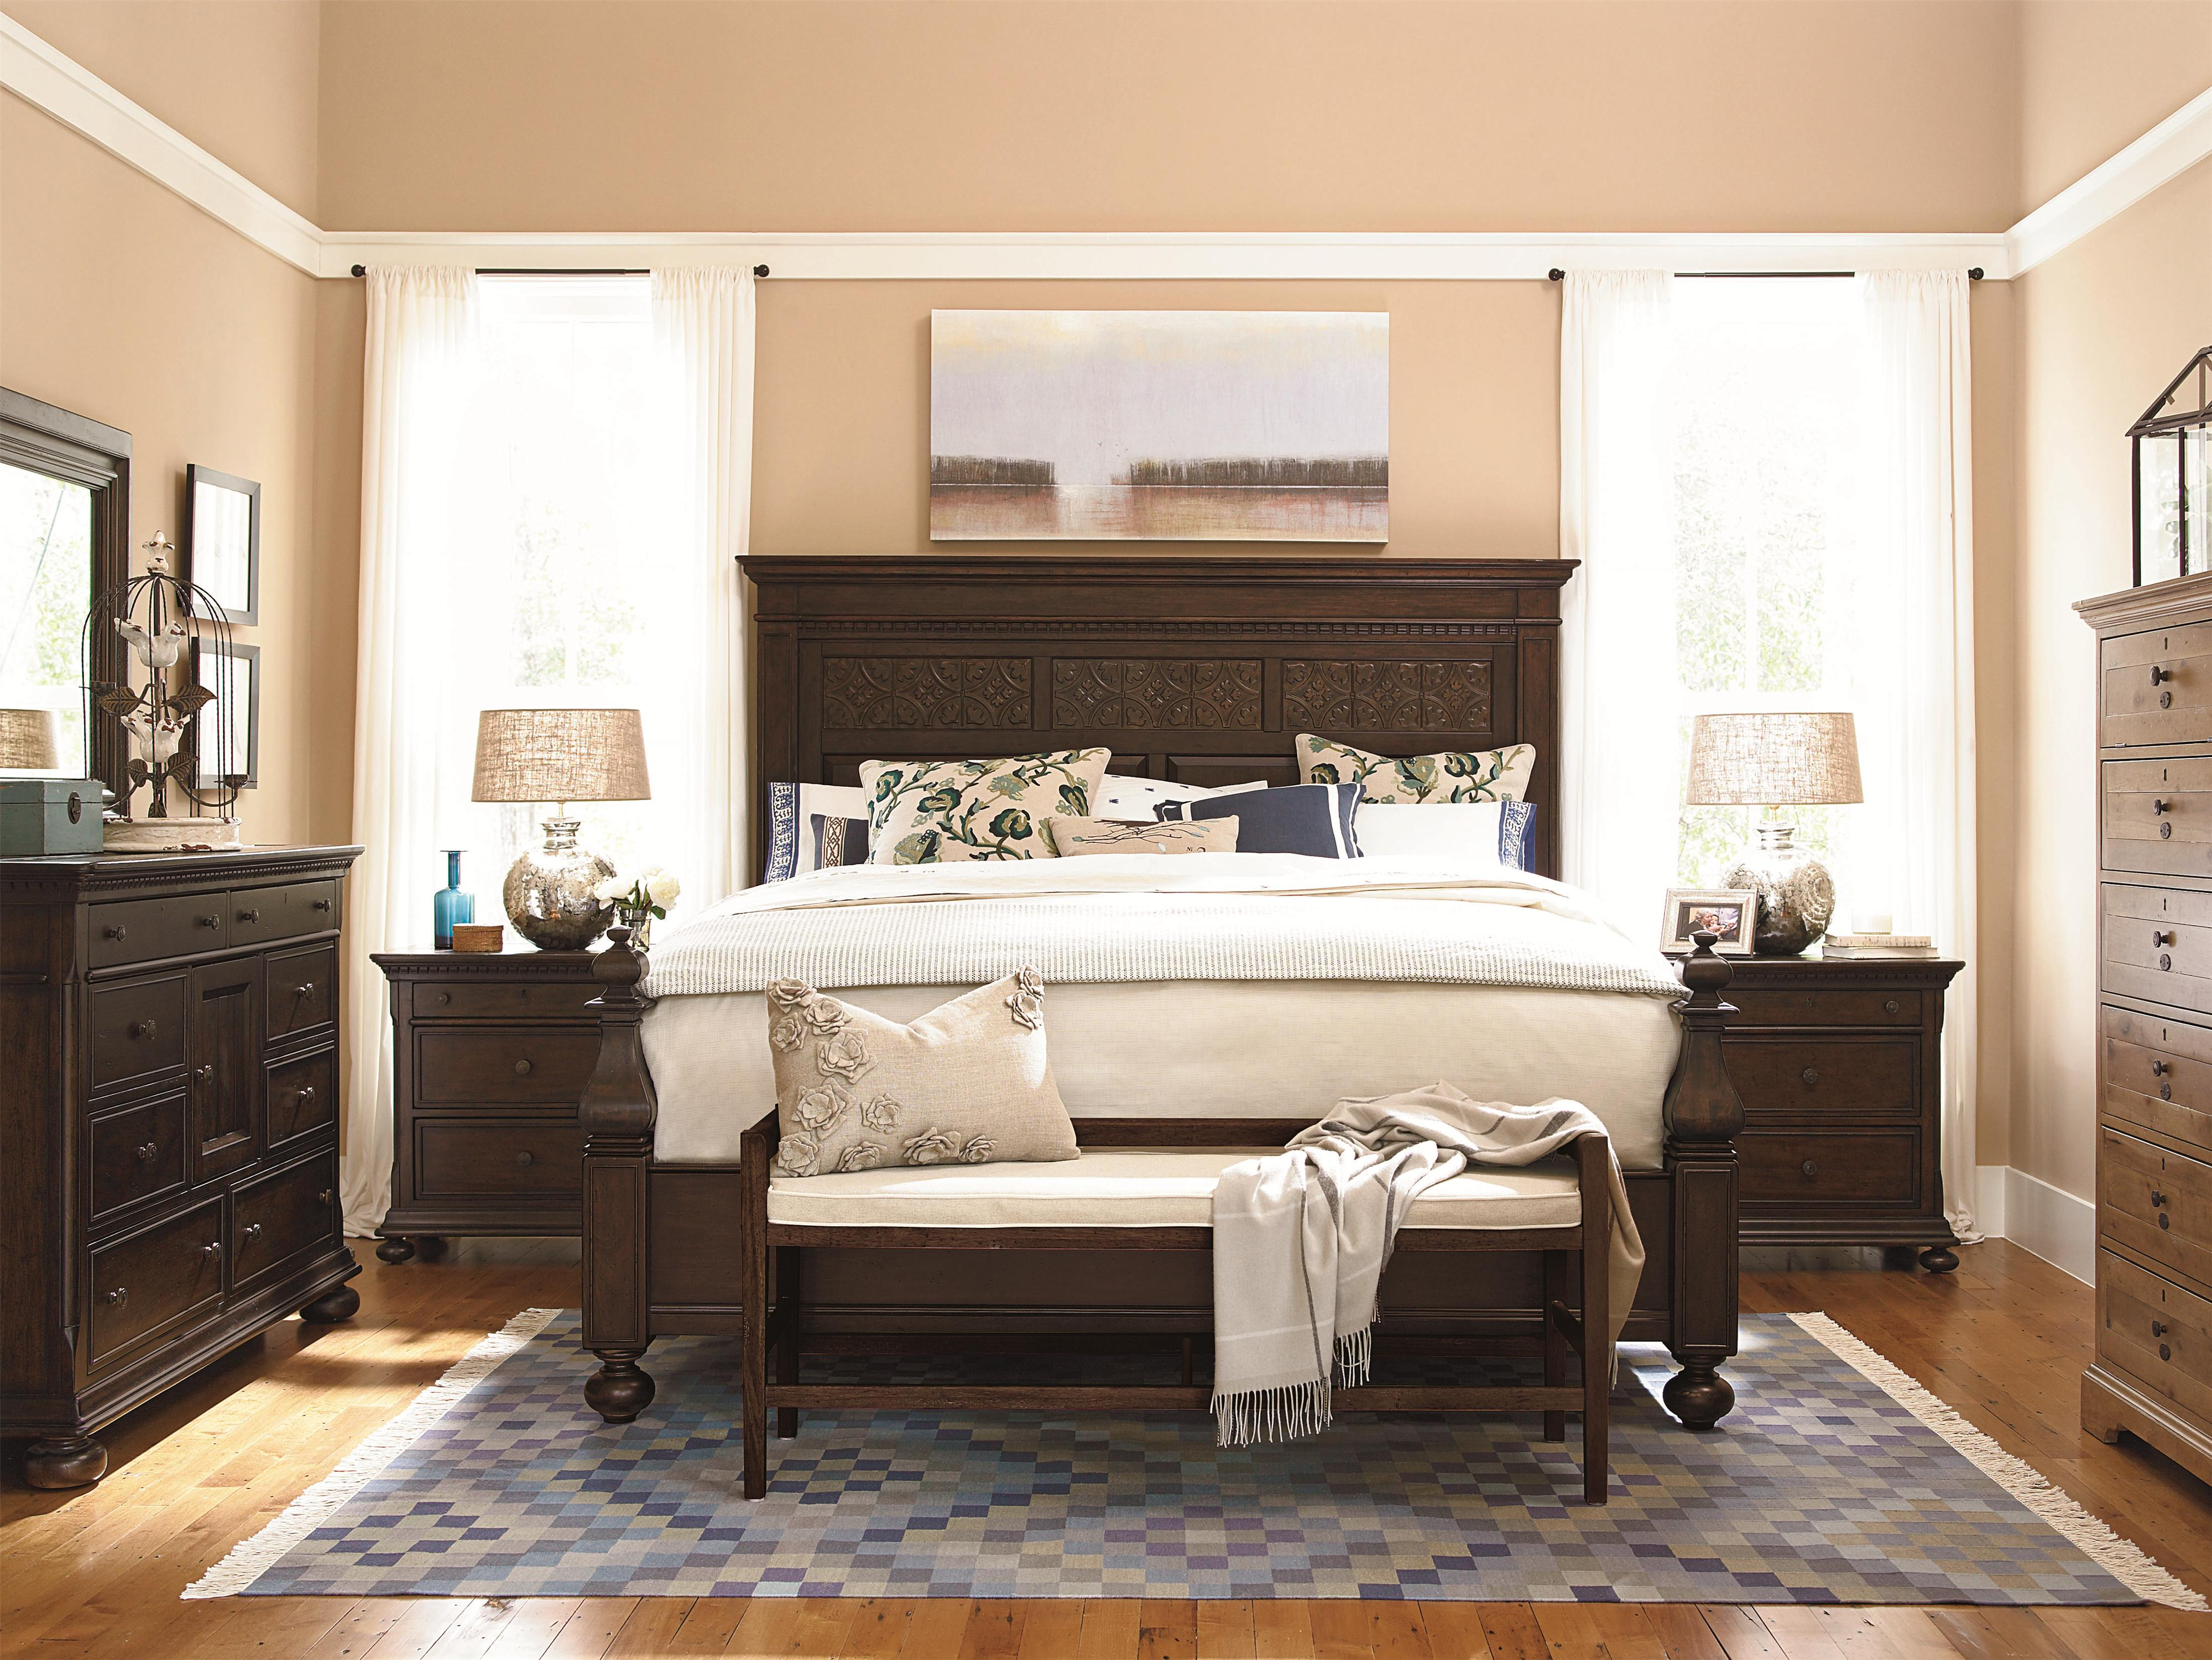 Paula Deen By Universal Down Home Queen Aunt Peggy 39 S Bed With Headboard And Footboard Zak 39 S